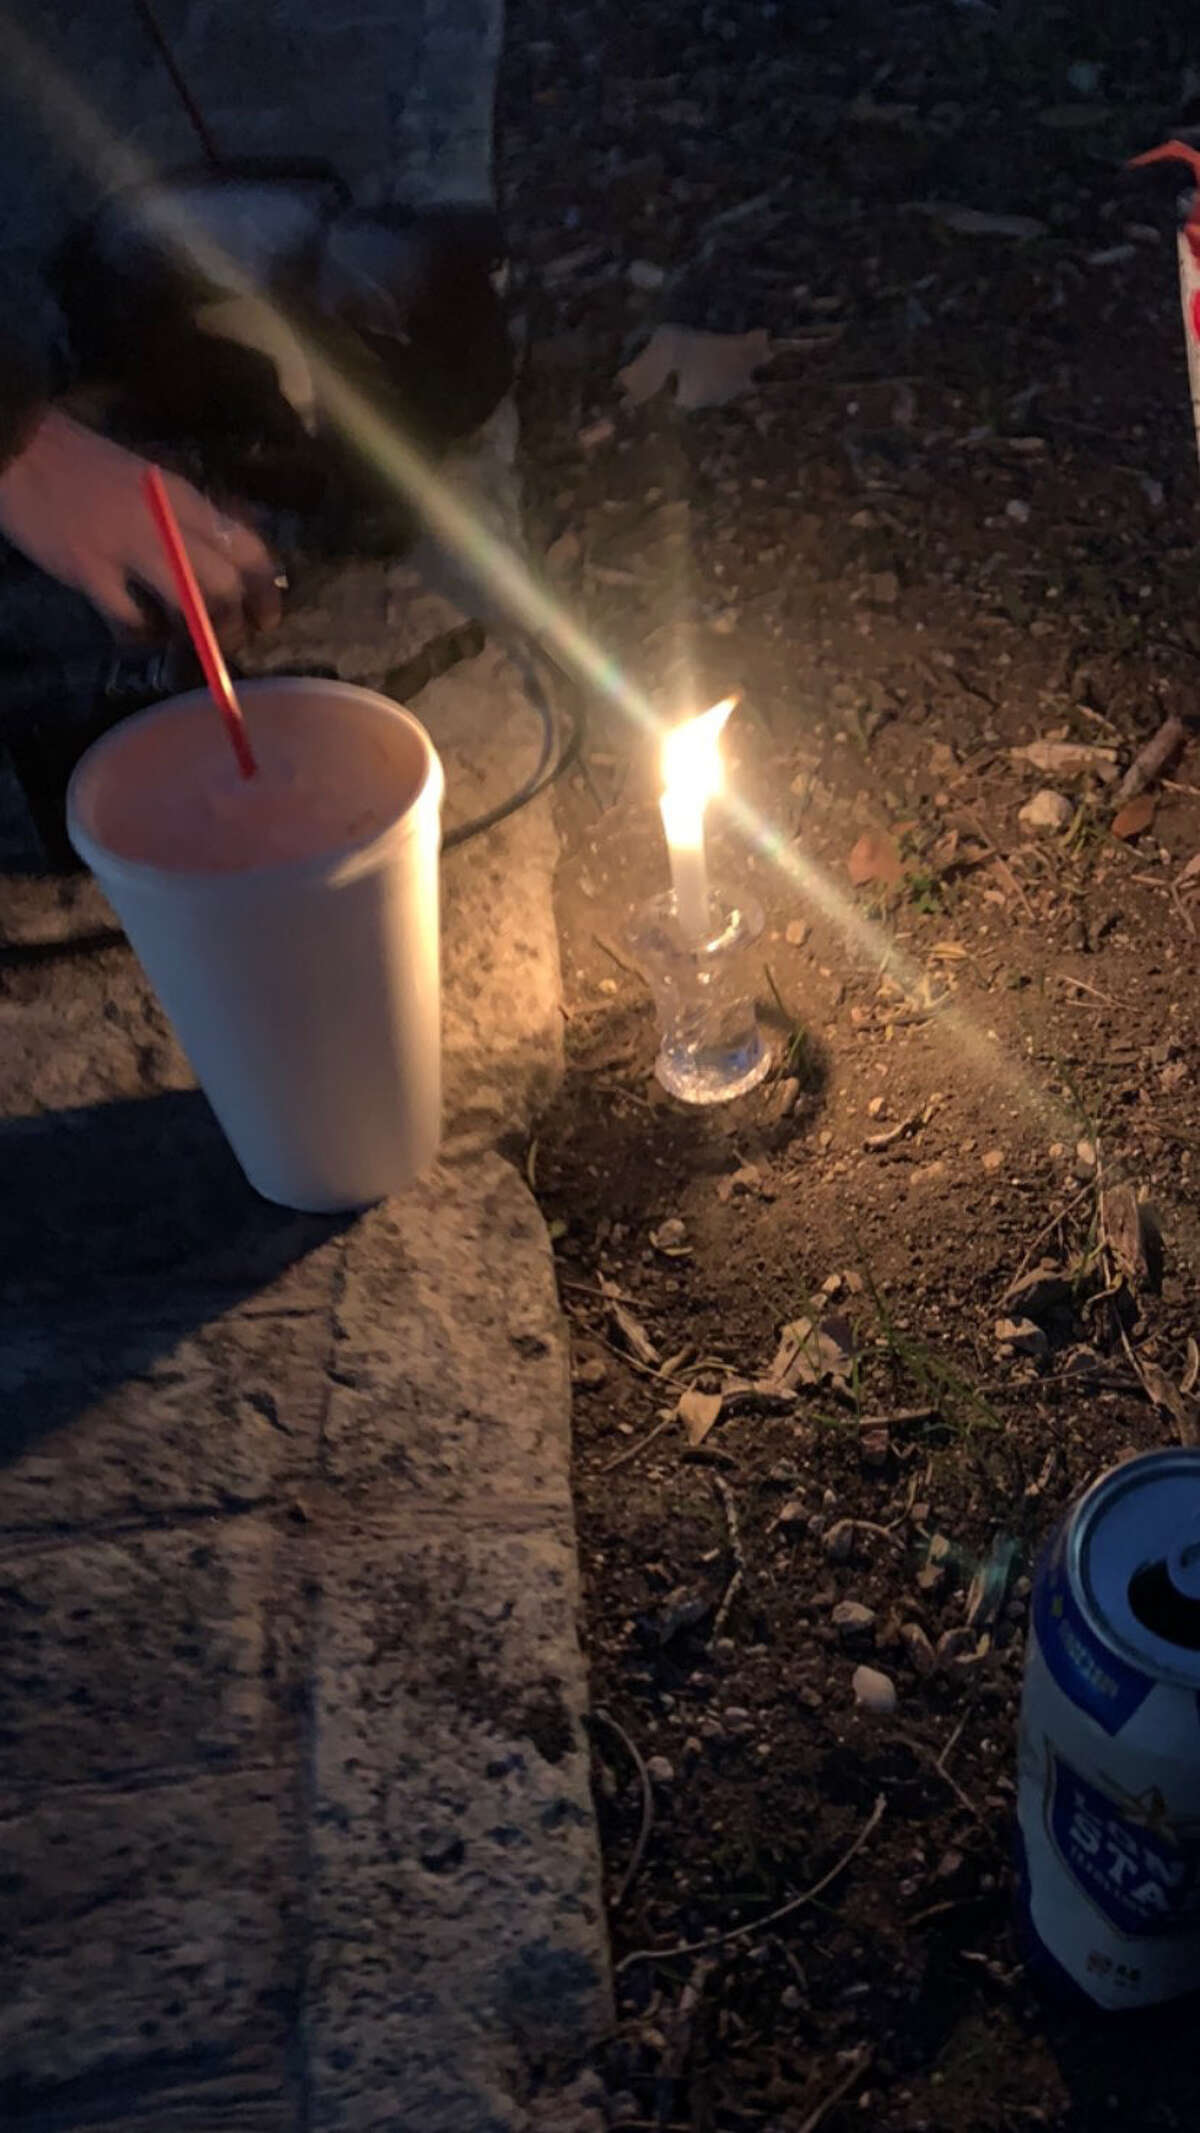 Candle in the park.